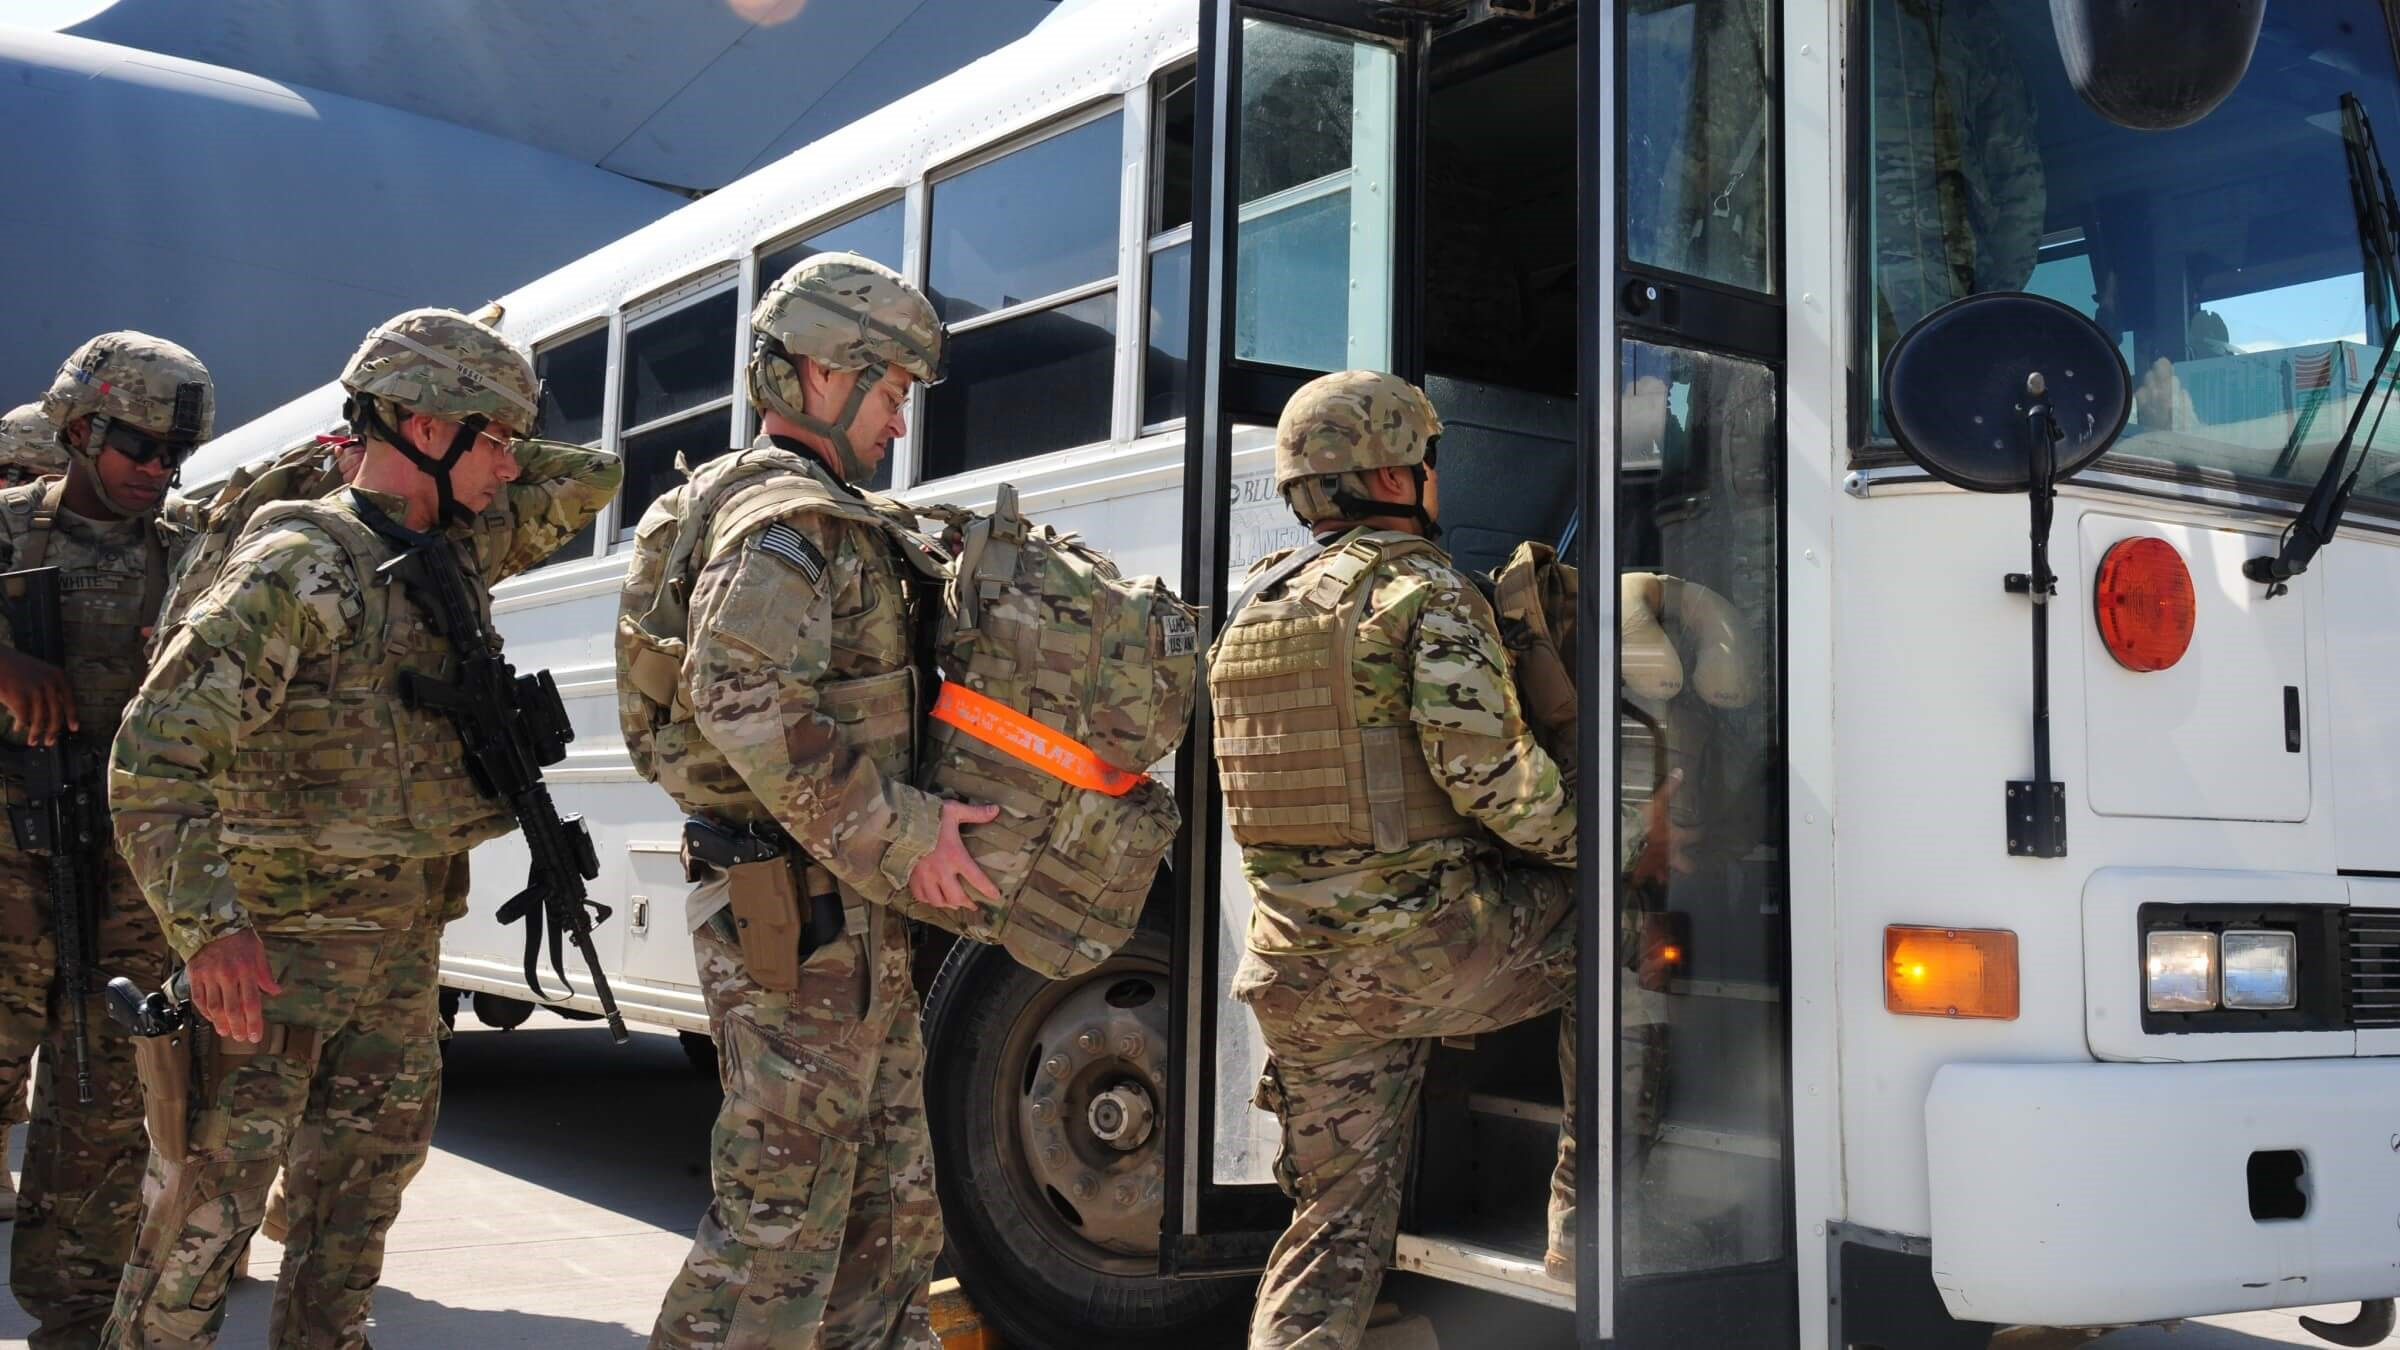 Service members getting on a bus